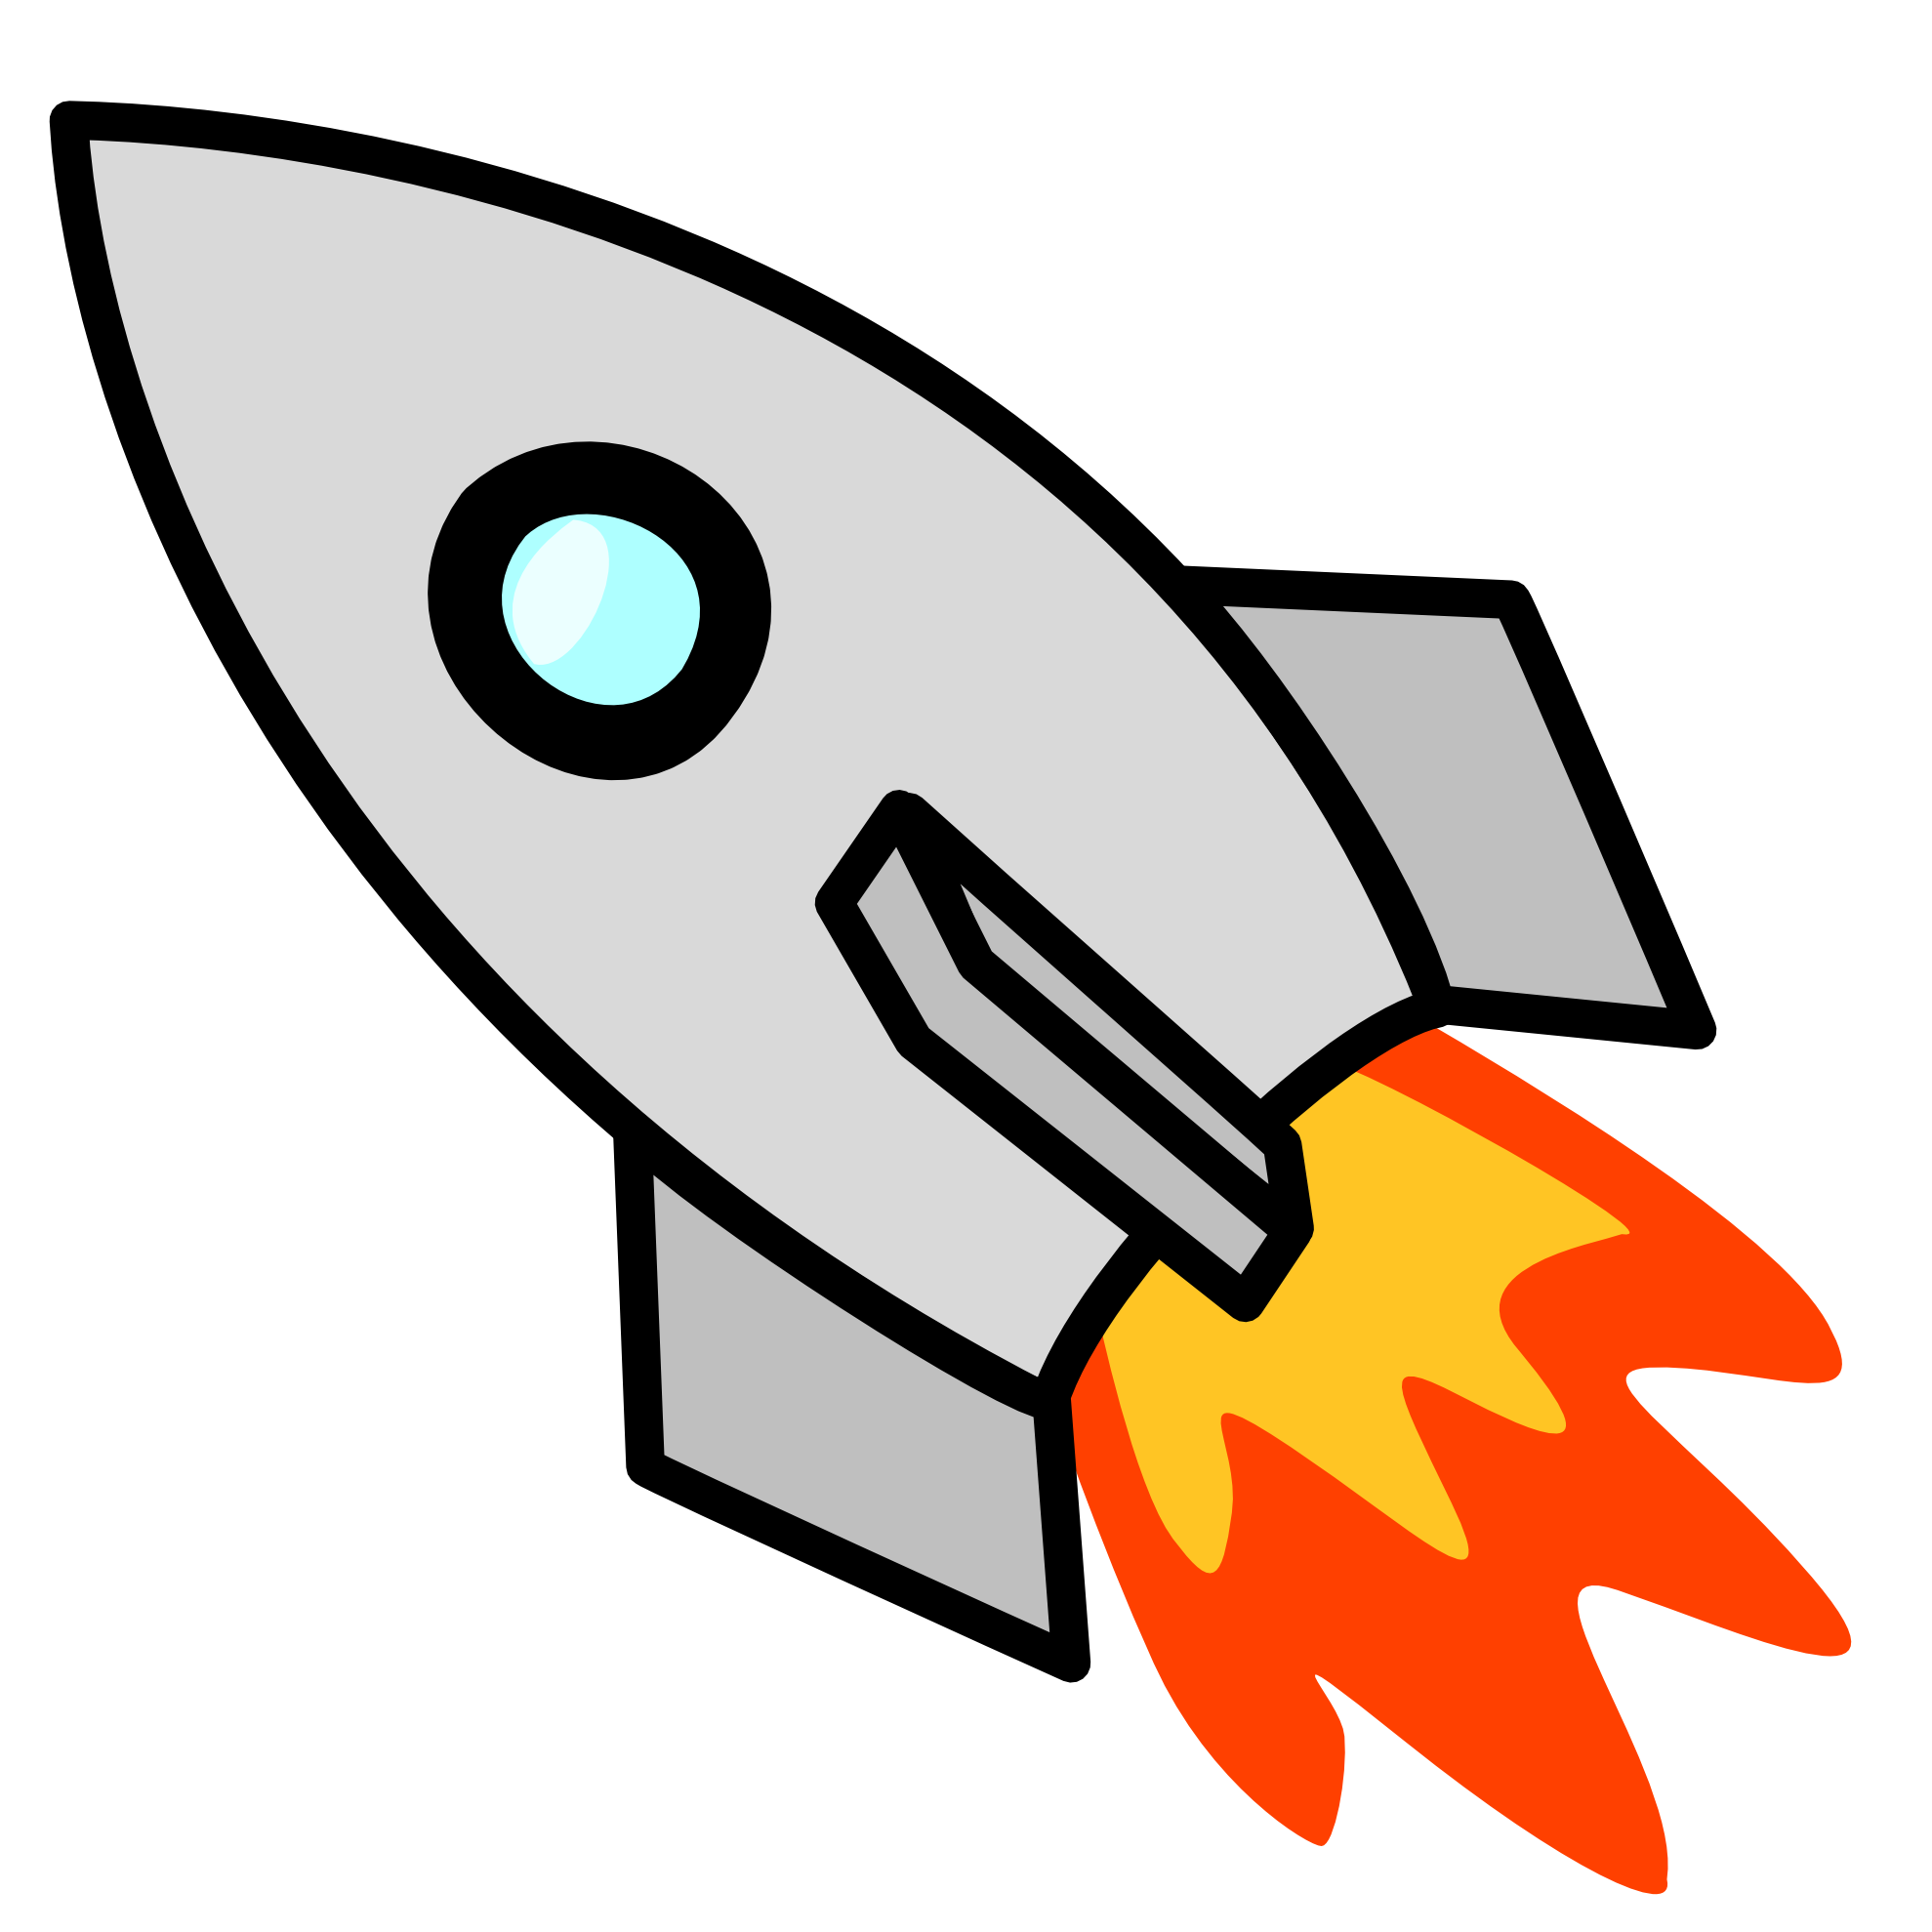 vector royalty free download Rocket clipart black and white free clipart images